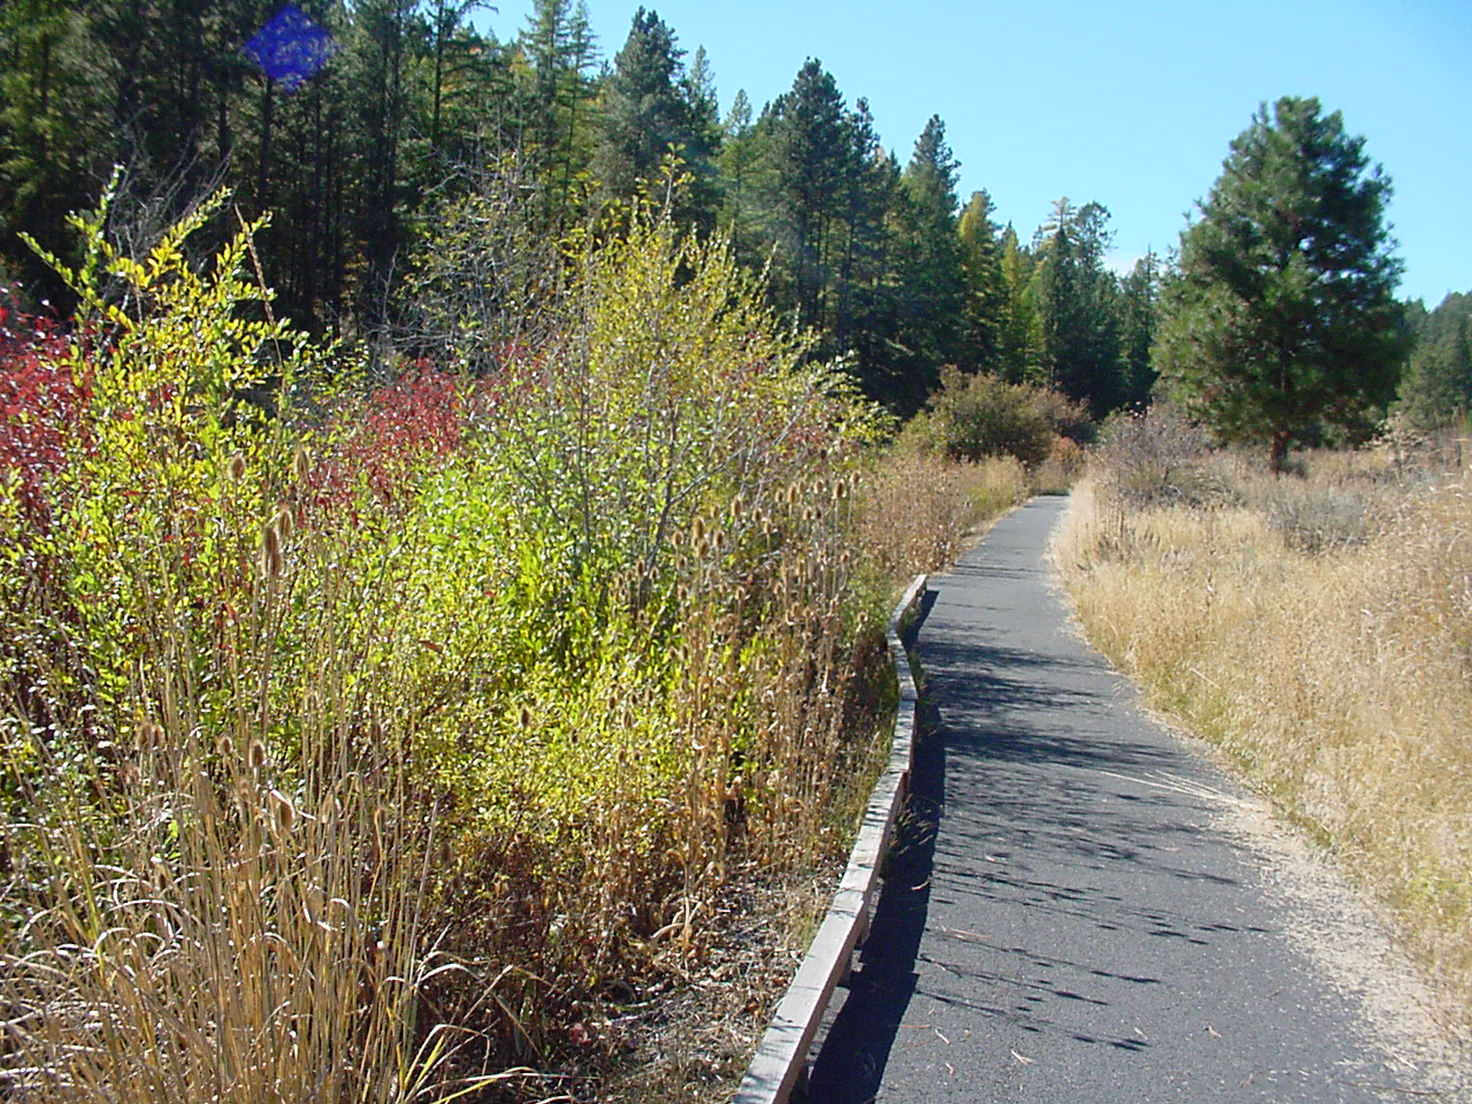 Accessible paved trail near the Powder River along a stream